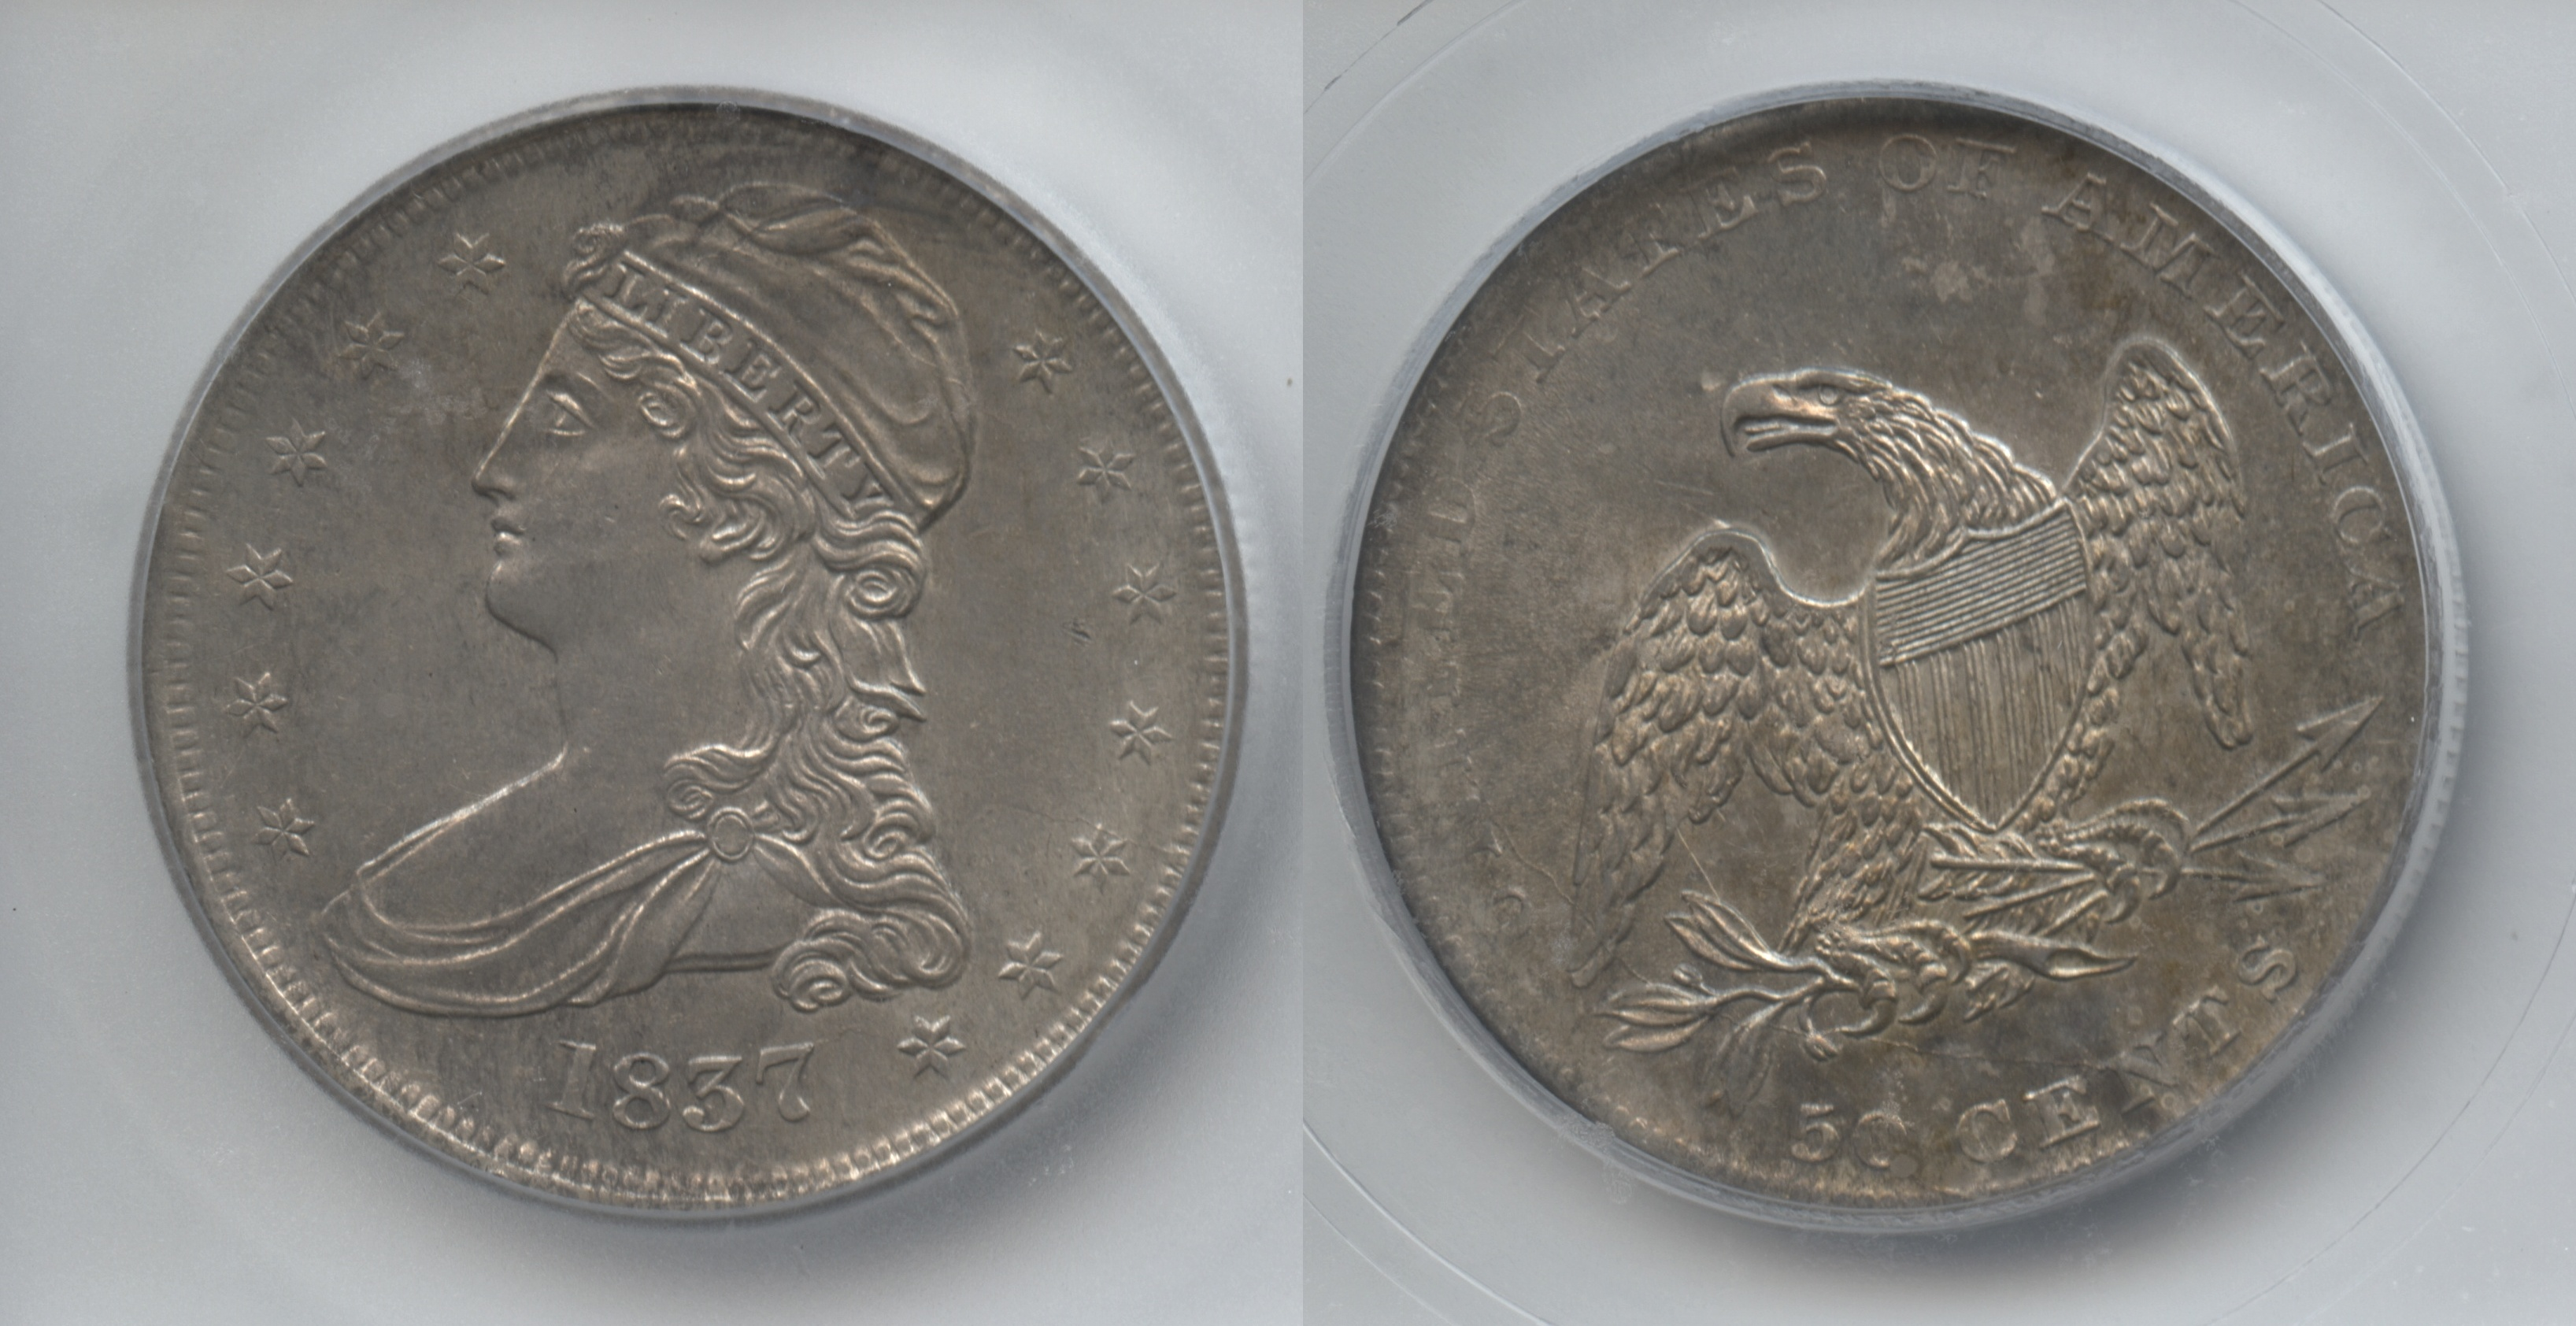 1837 Reeded Edge Capped Bust Half Dollar ICG MS-63